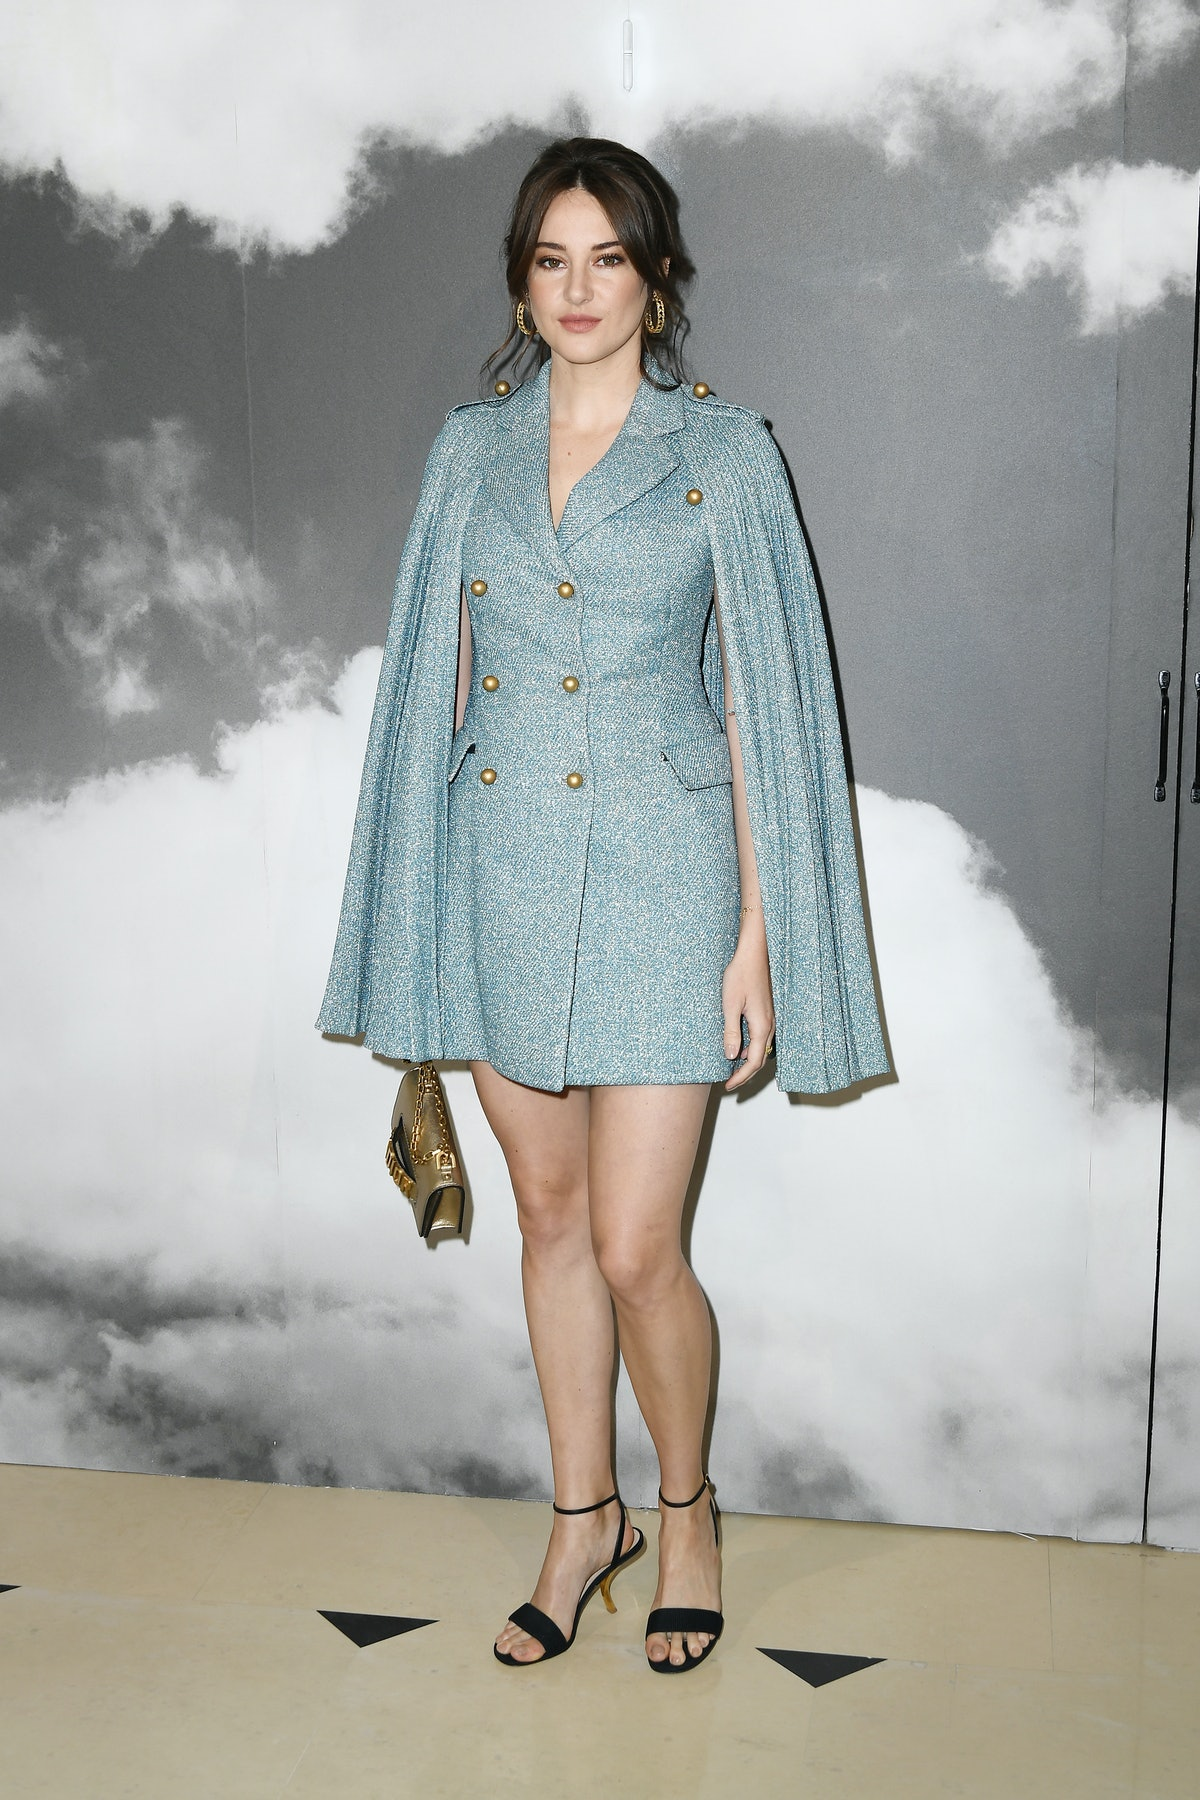 Shailene Woodley attends the Christian Dior Haute Couture Fall/Winter 2019 2020 show as part of Pari...